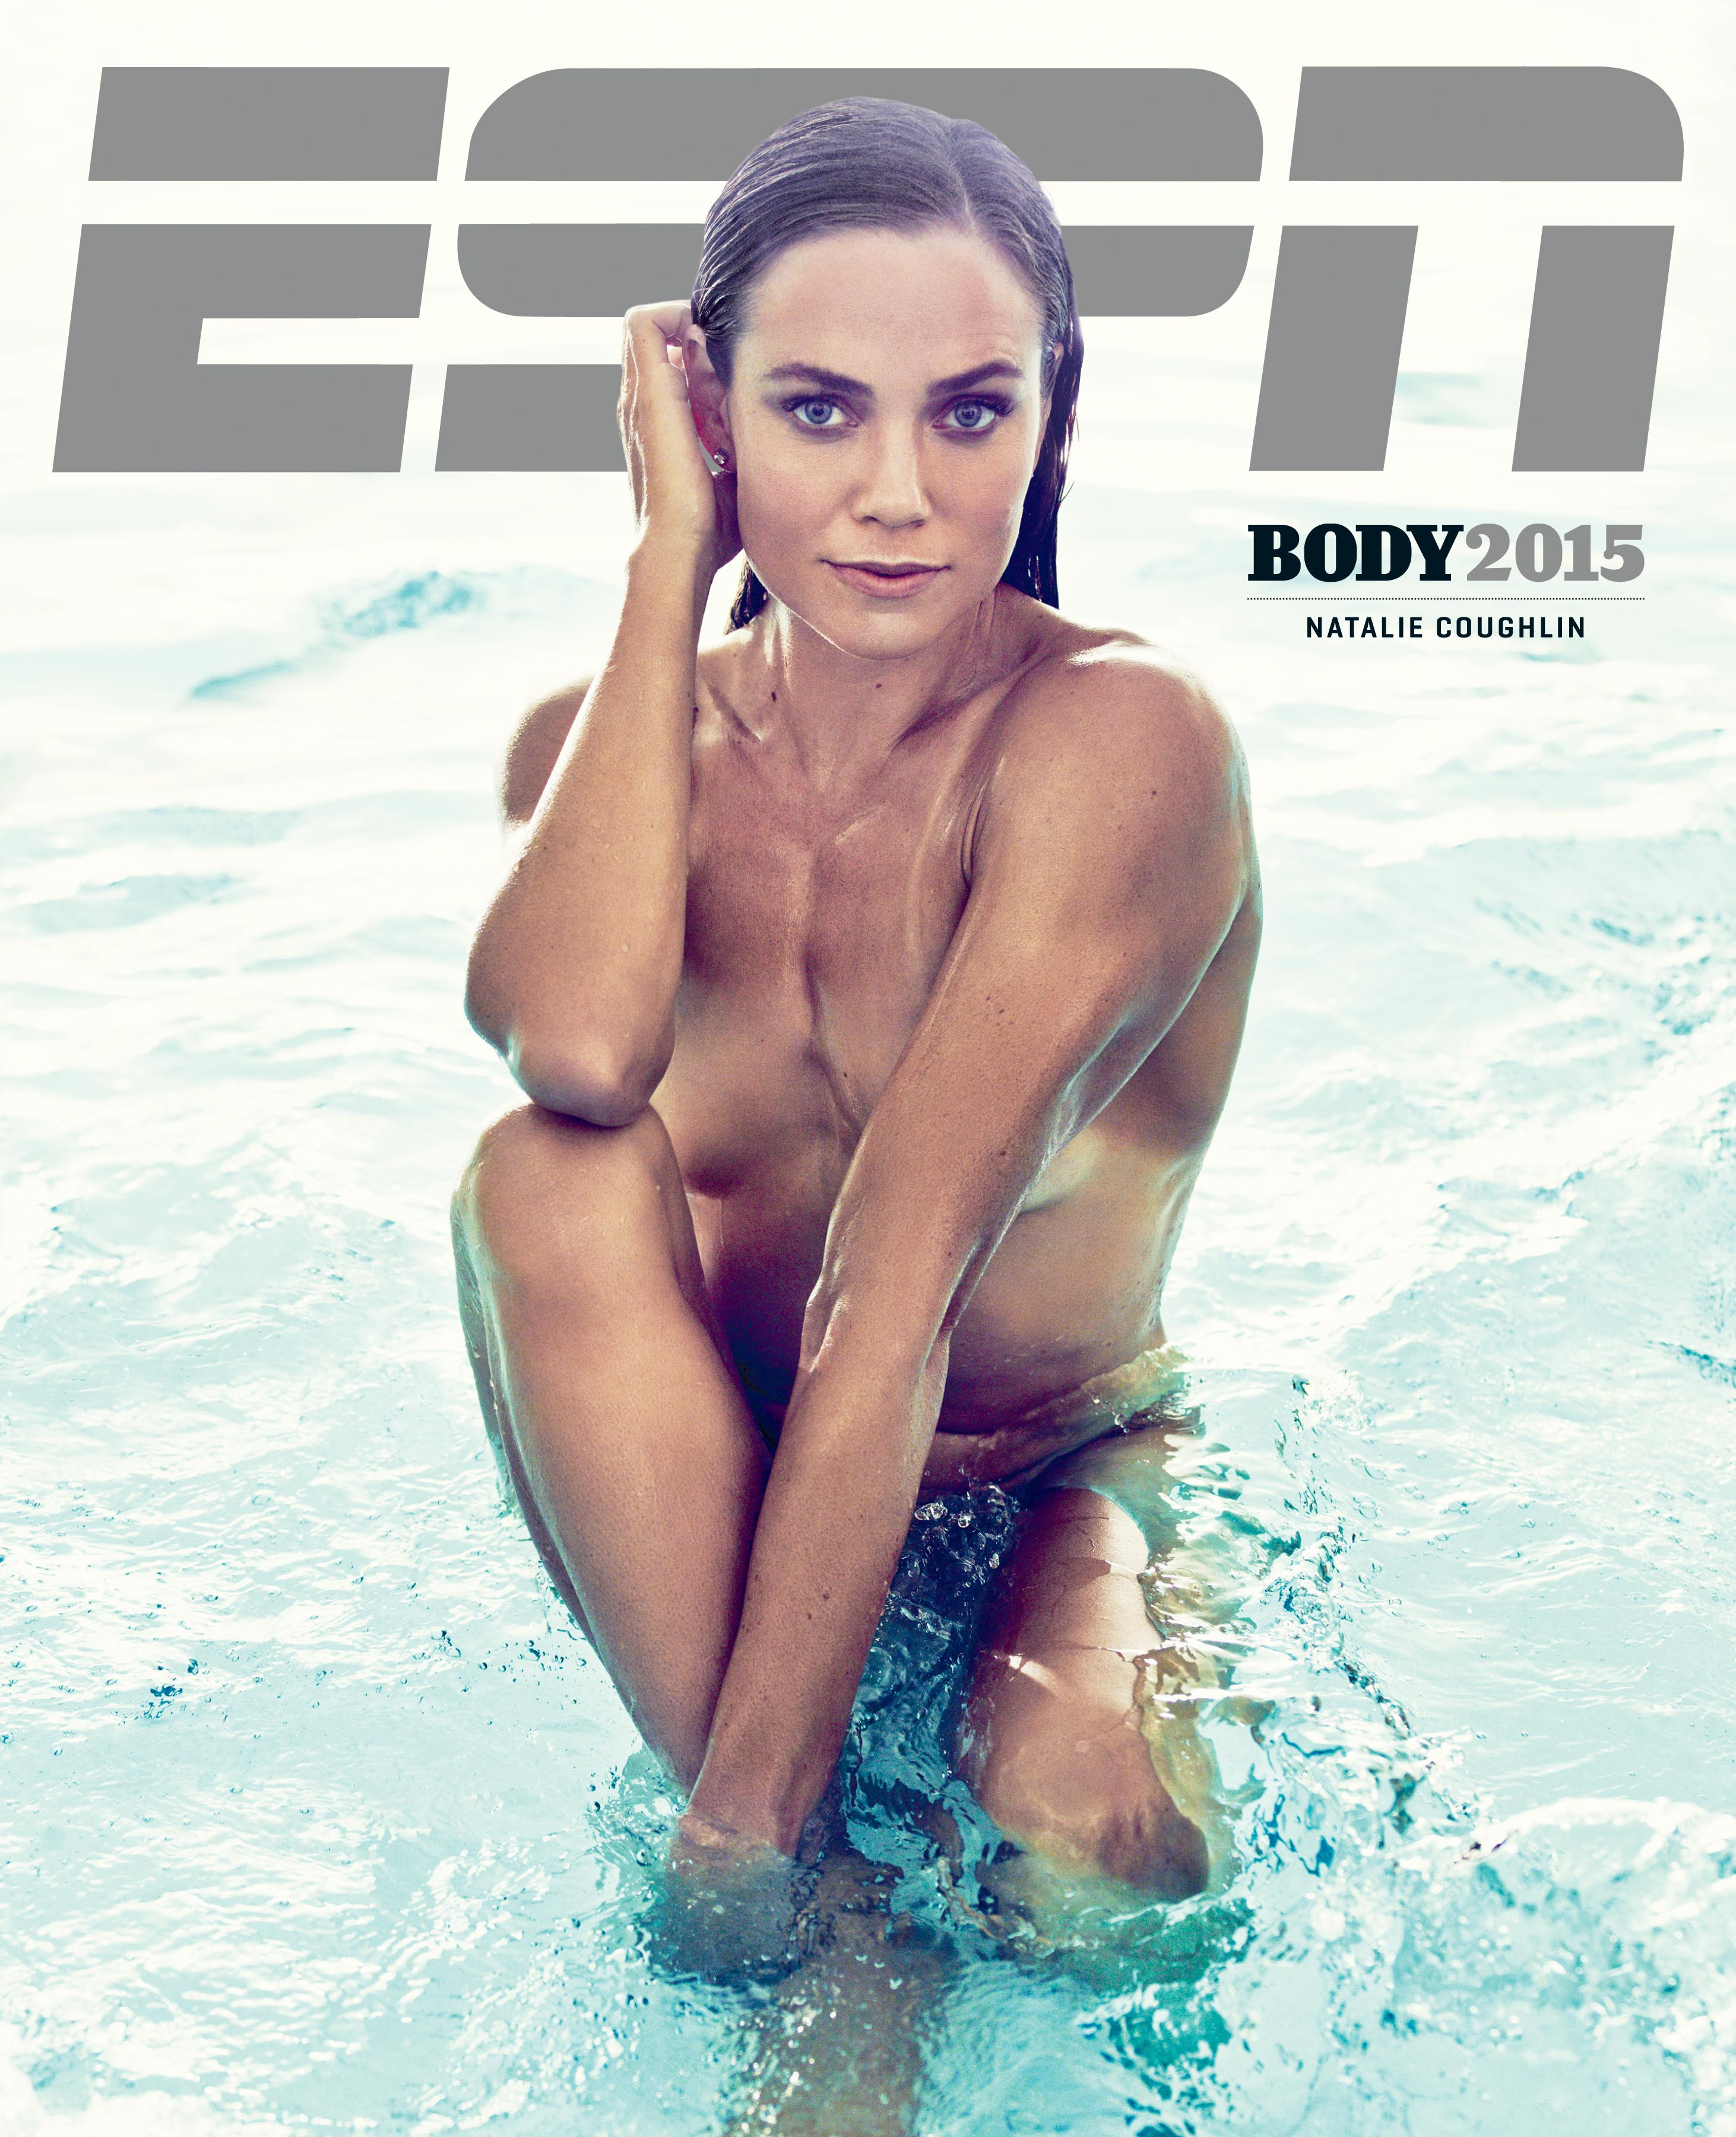 ESPN Body Issue 2012 Features 27 Buff Athletes [PHOTOS